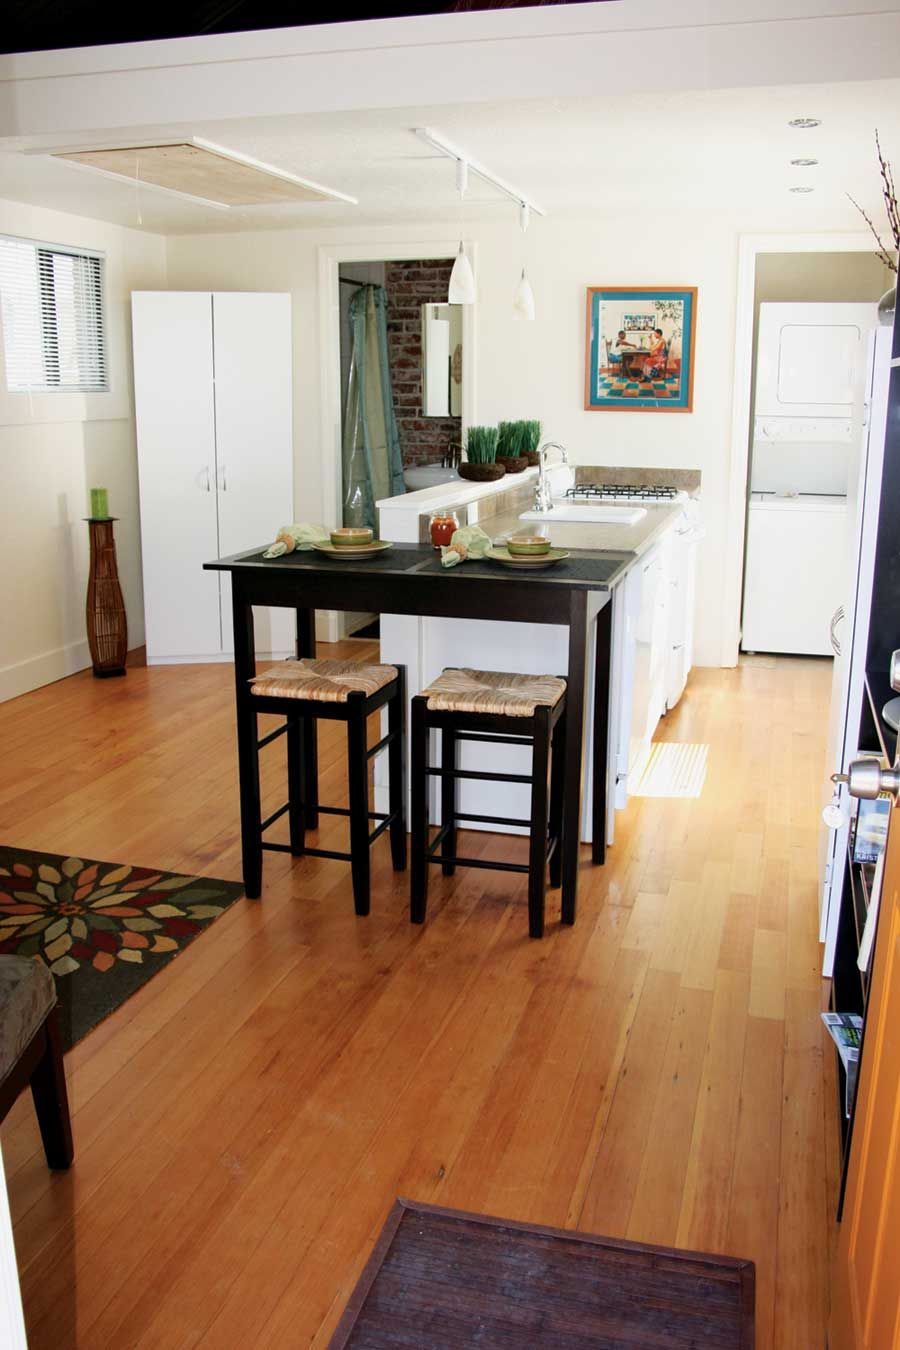 little house interior design - 1000+ images about iny house on Pinterest iny house, iny ...